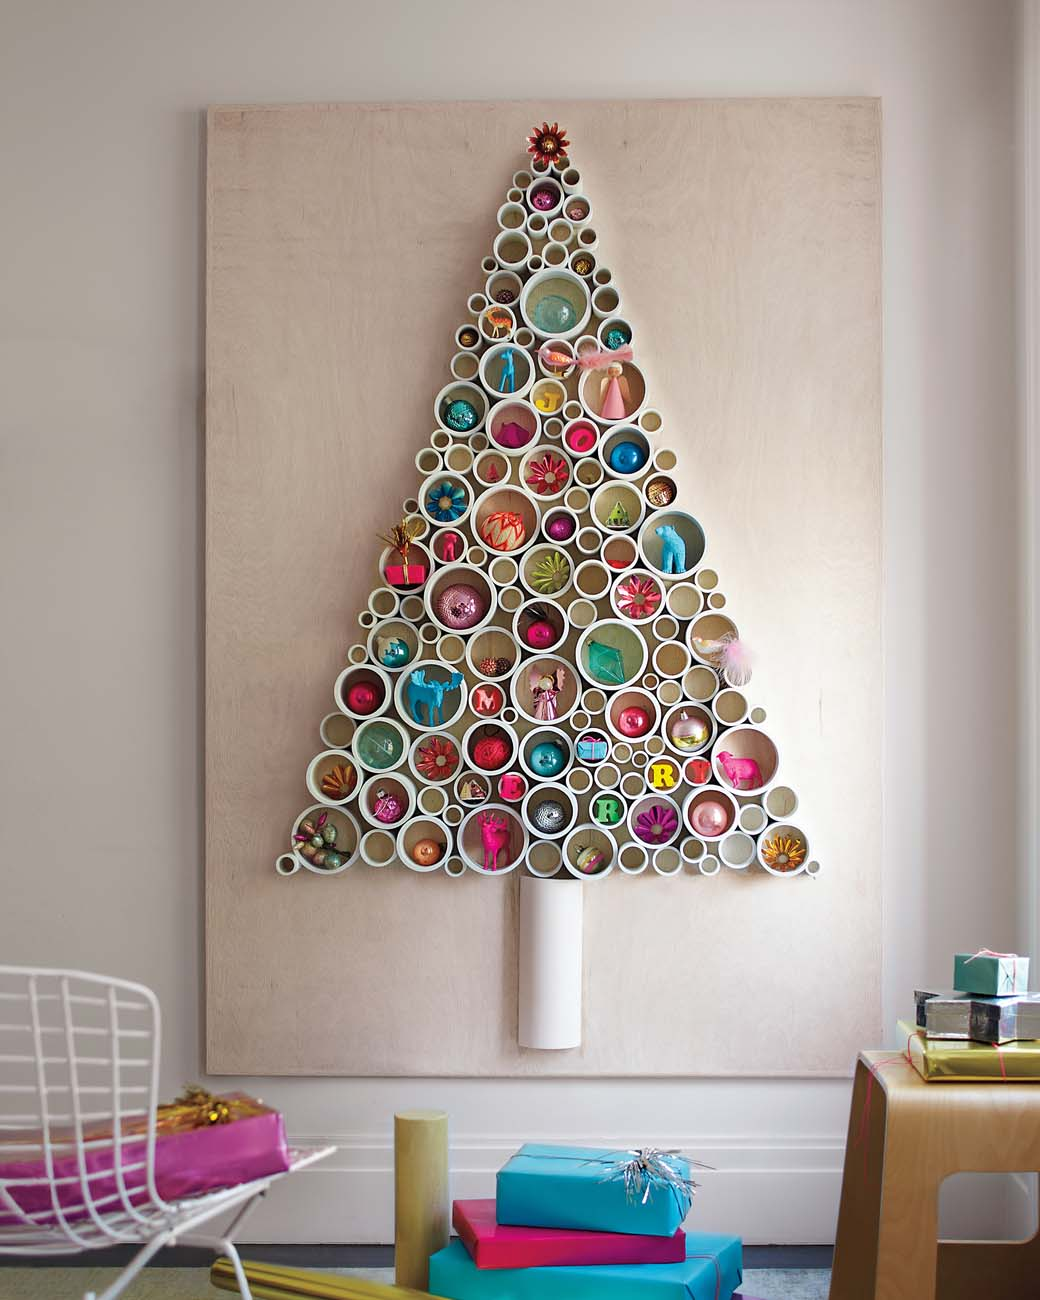 DIY PVC-Pipe Christmas Tree dwellingdecor